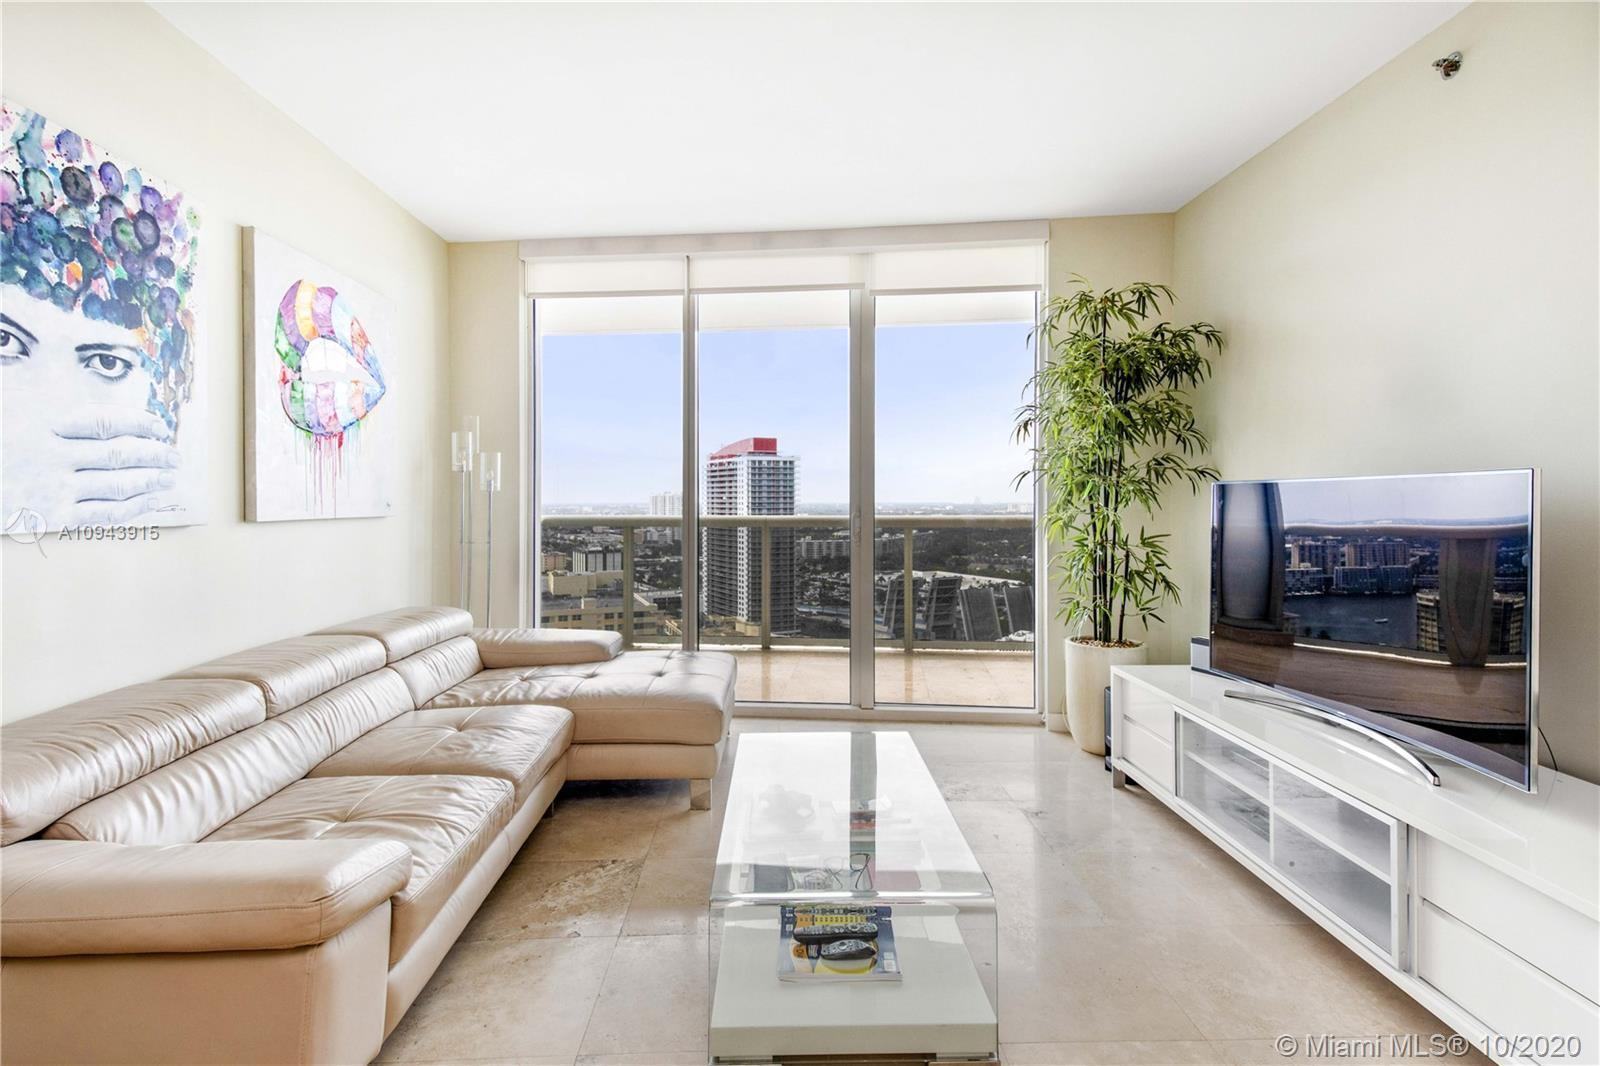 Breathtaking Intracoastal and city views awaits you from this 1 Bed + den /1 bath, 1086 Sq. Ft. unit